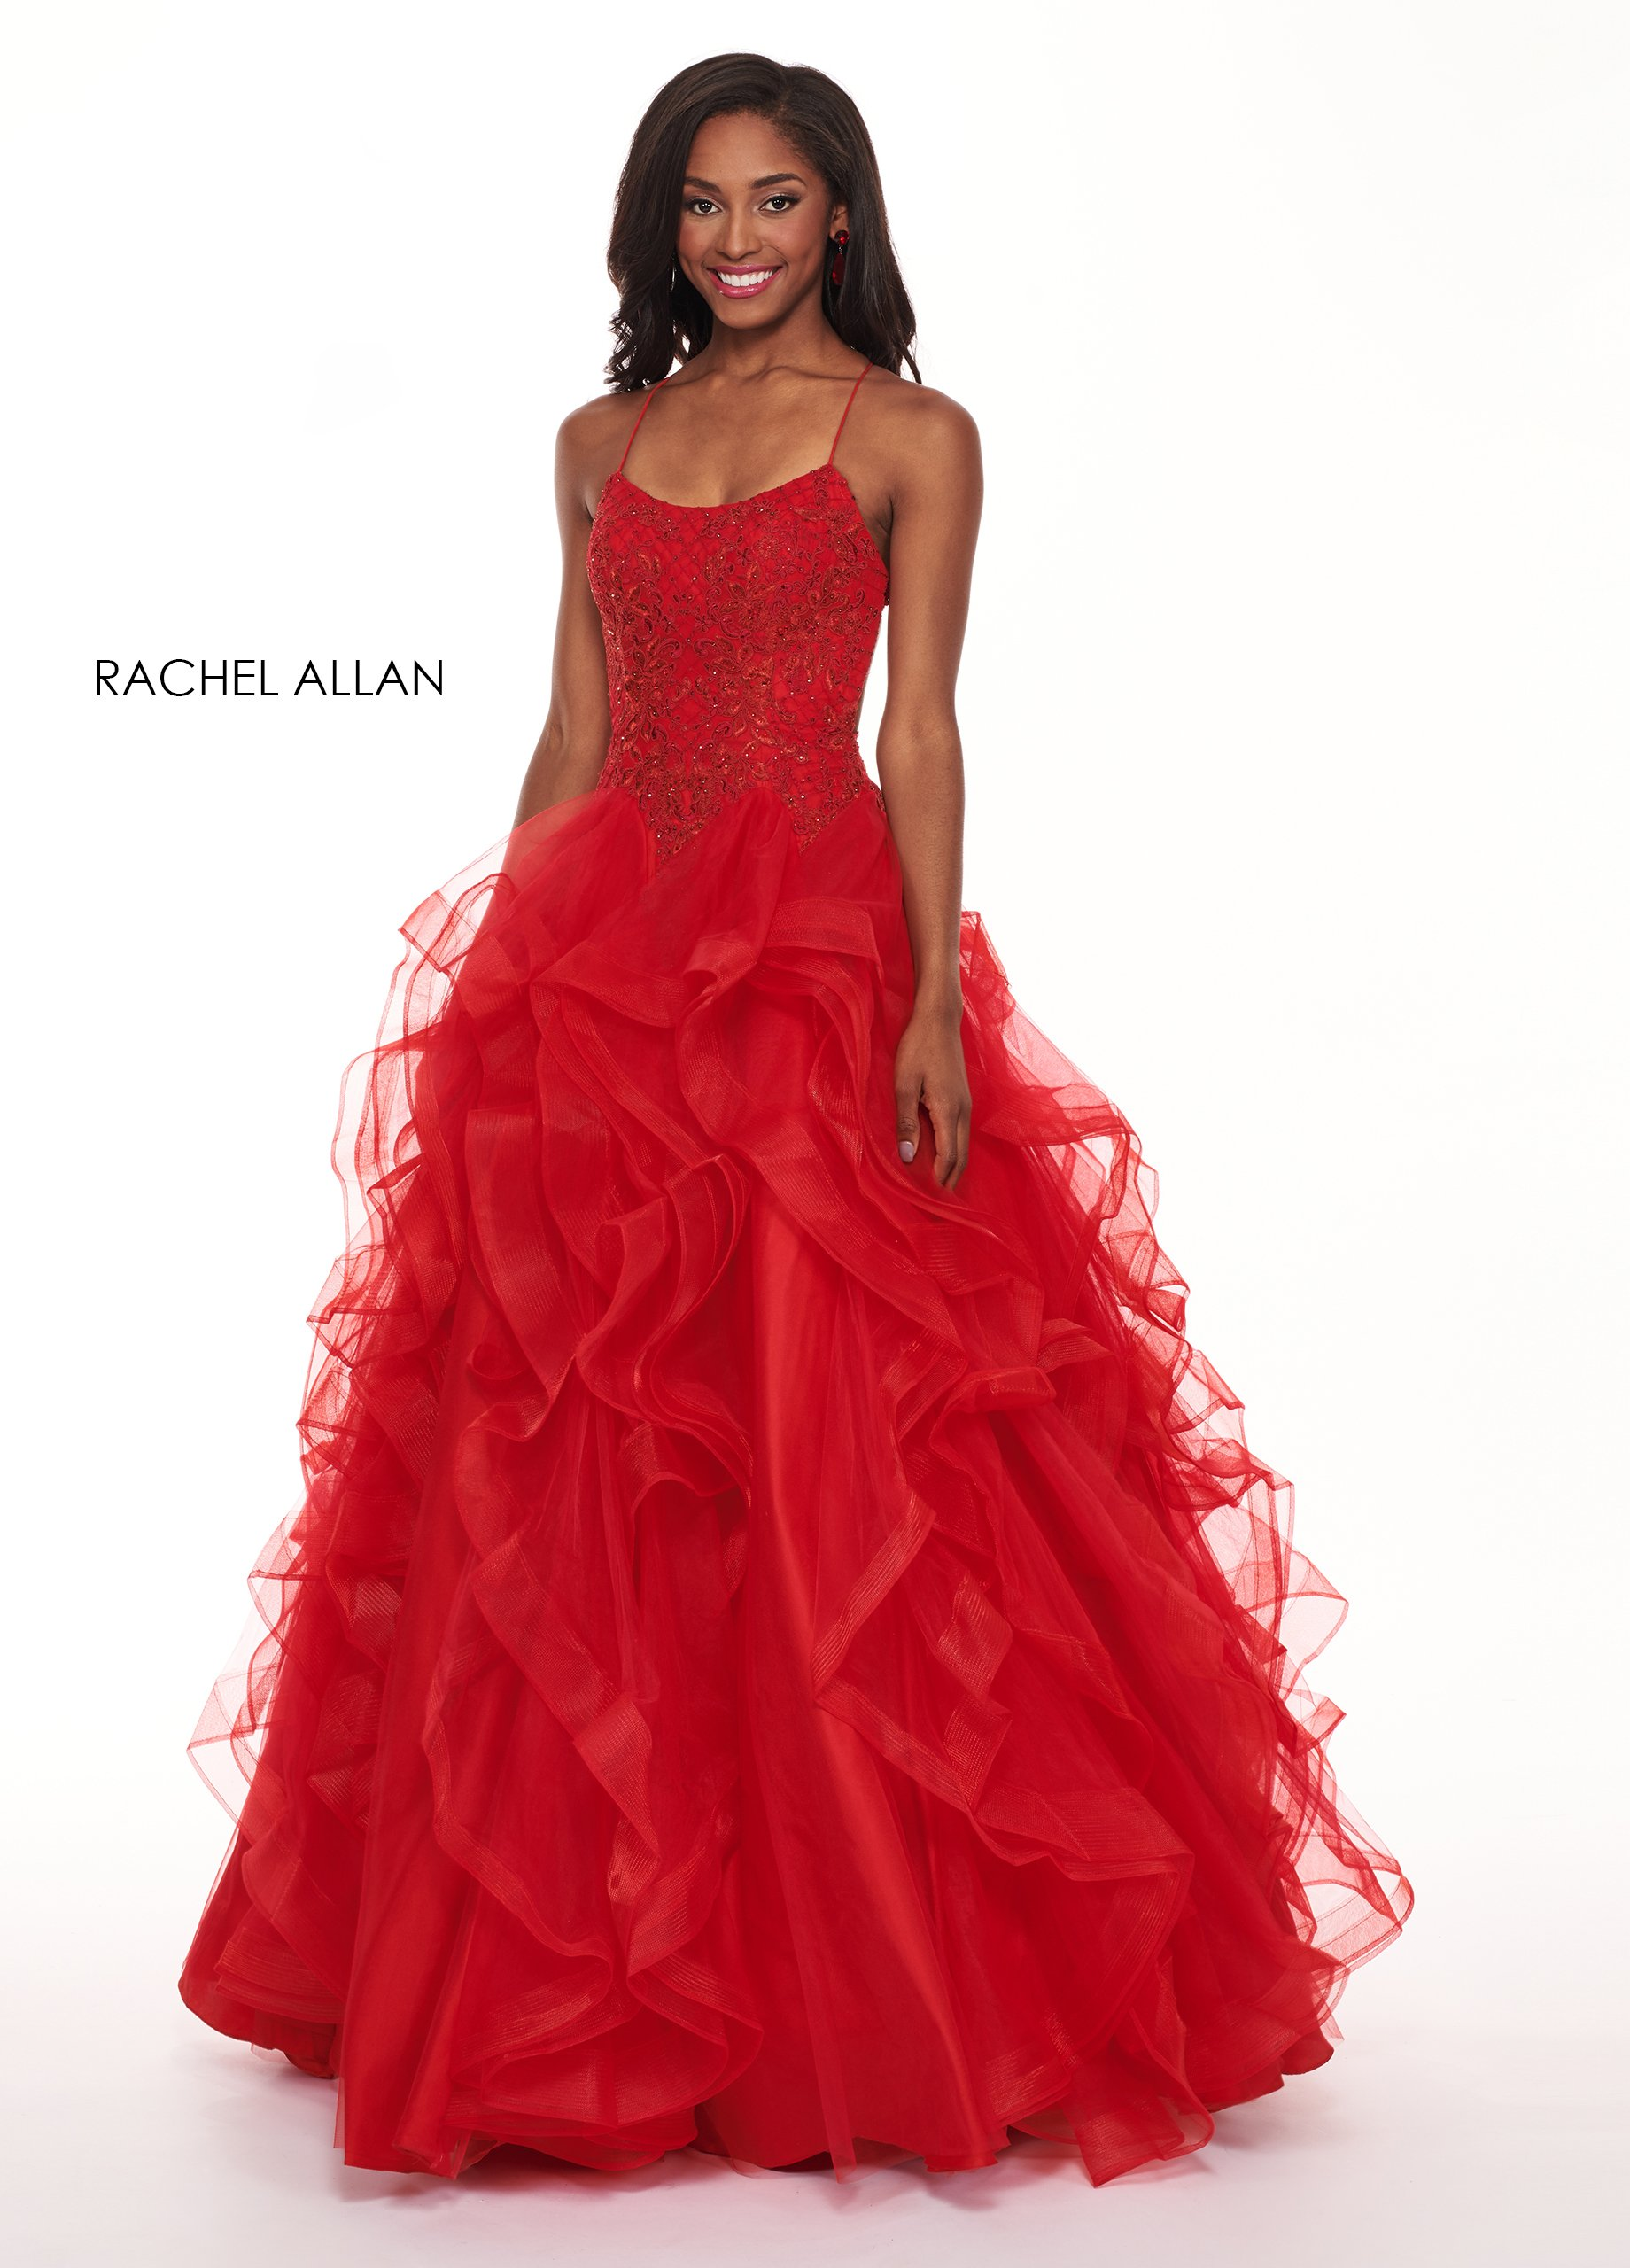 Scoop Neck Ball Gowns Prom Dresses in Red Color